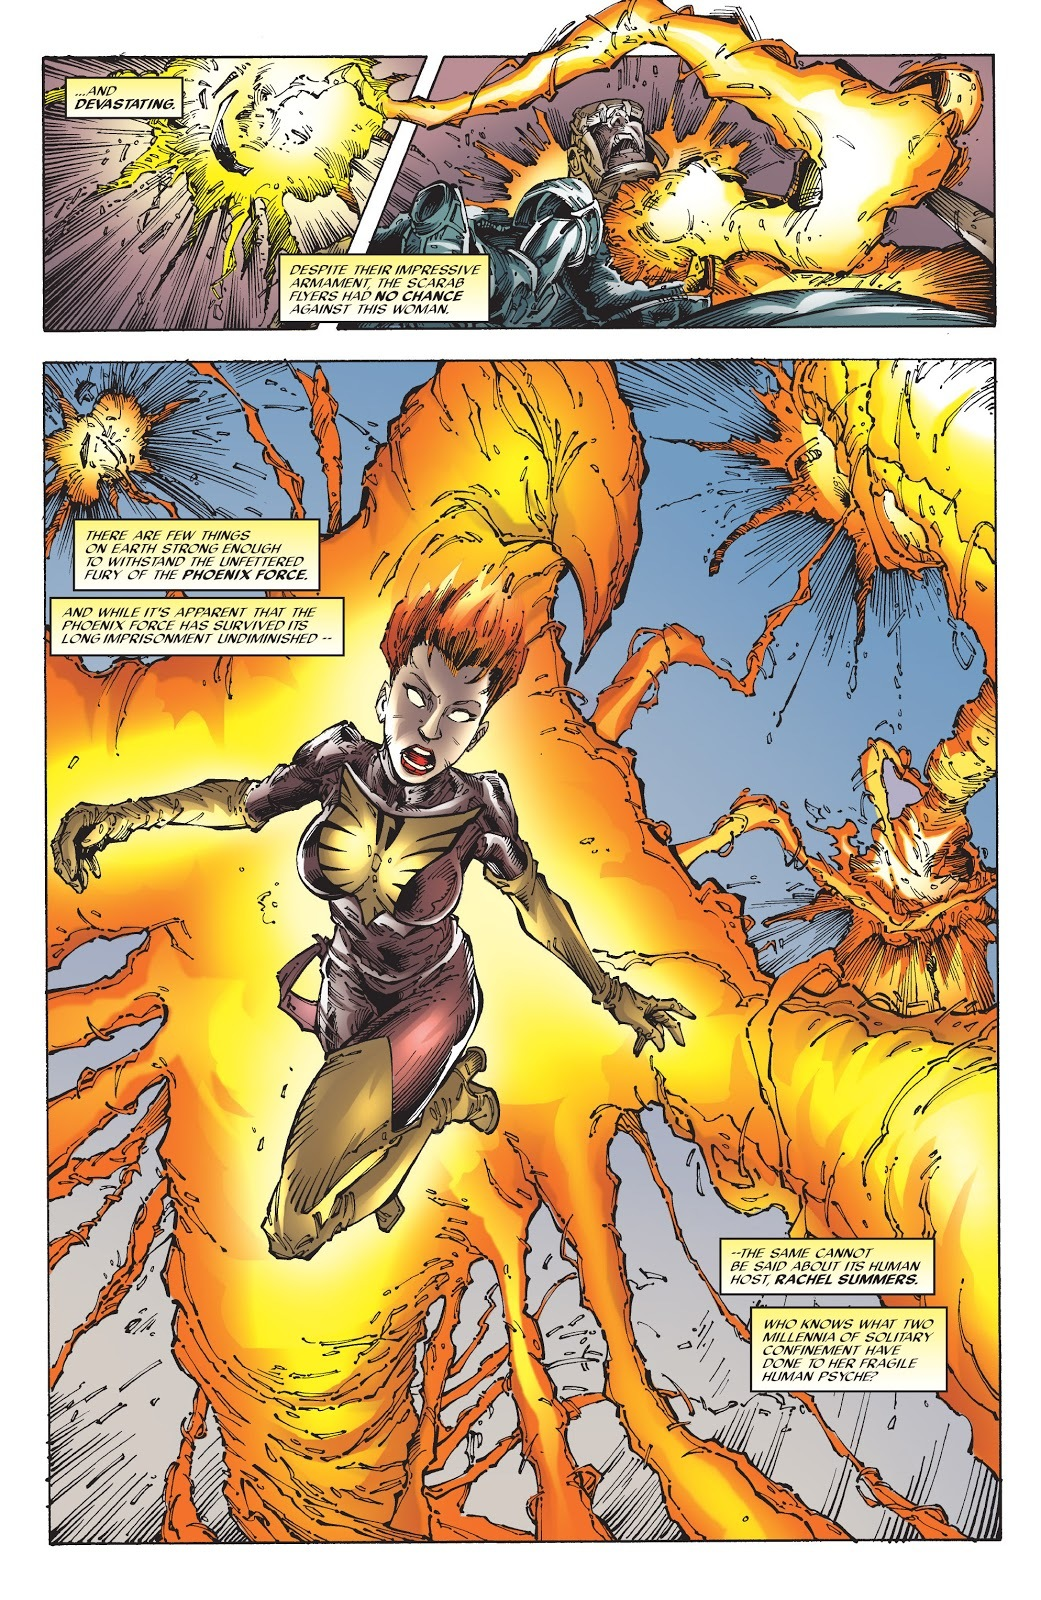 After using her powers to switch places with a time lost Captain Britain, Rachel emerges 2000 years in the future and immediately destroys a group of Apocalypse' soldiers